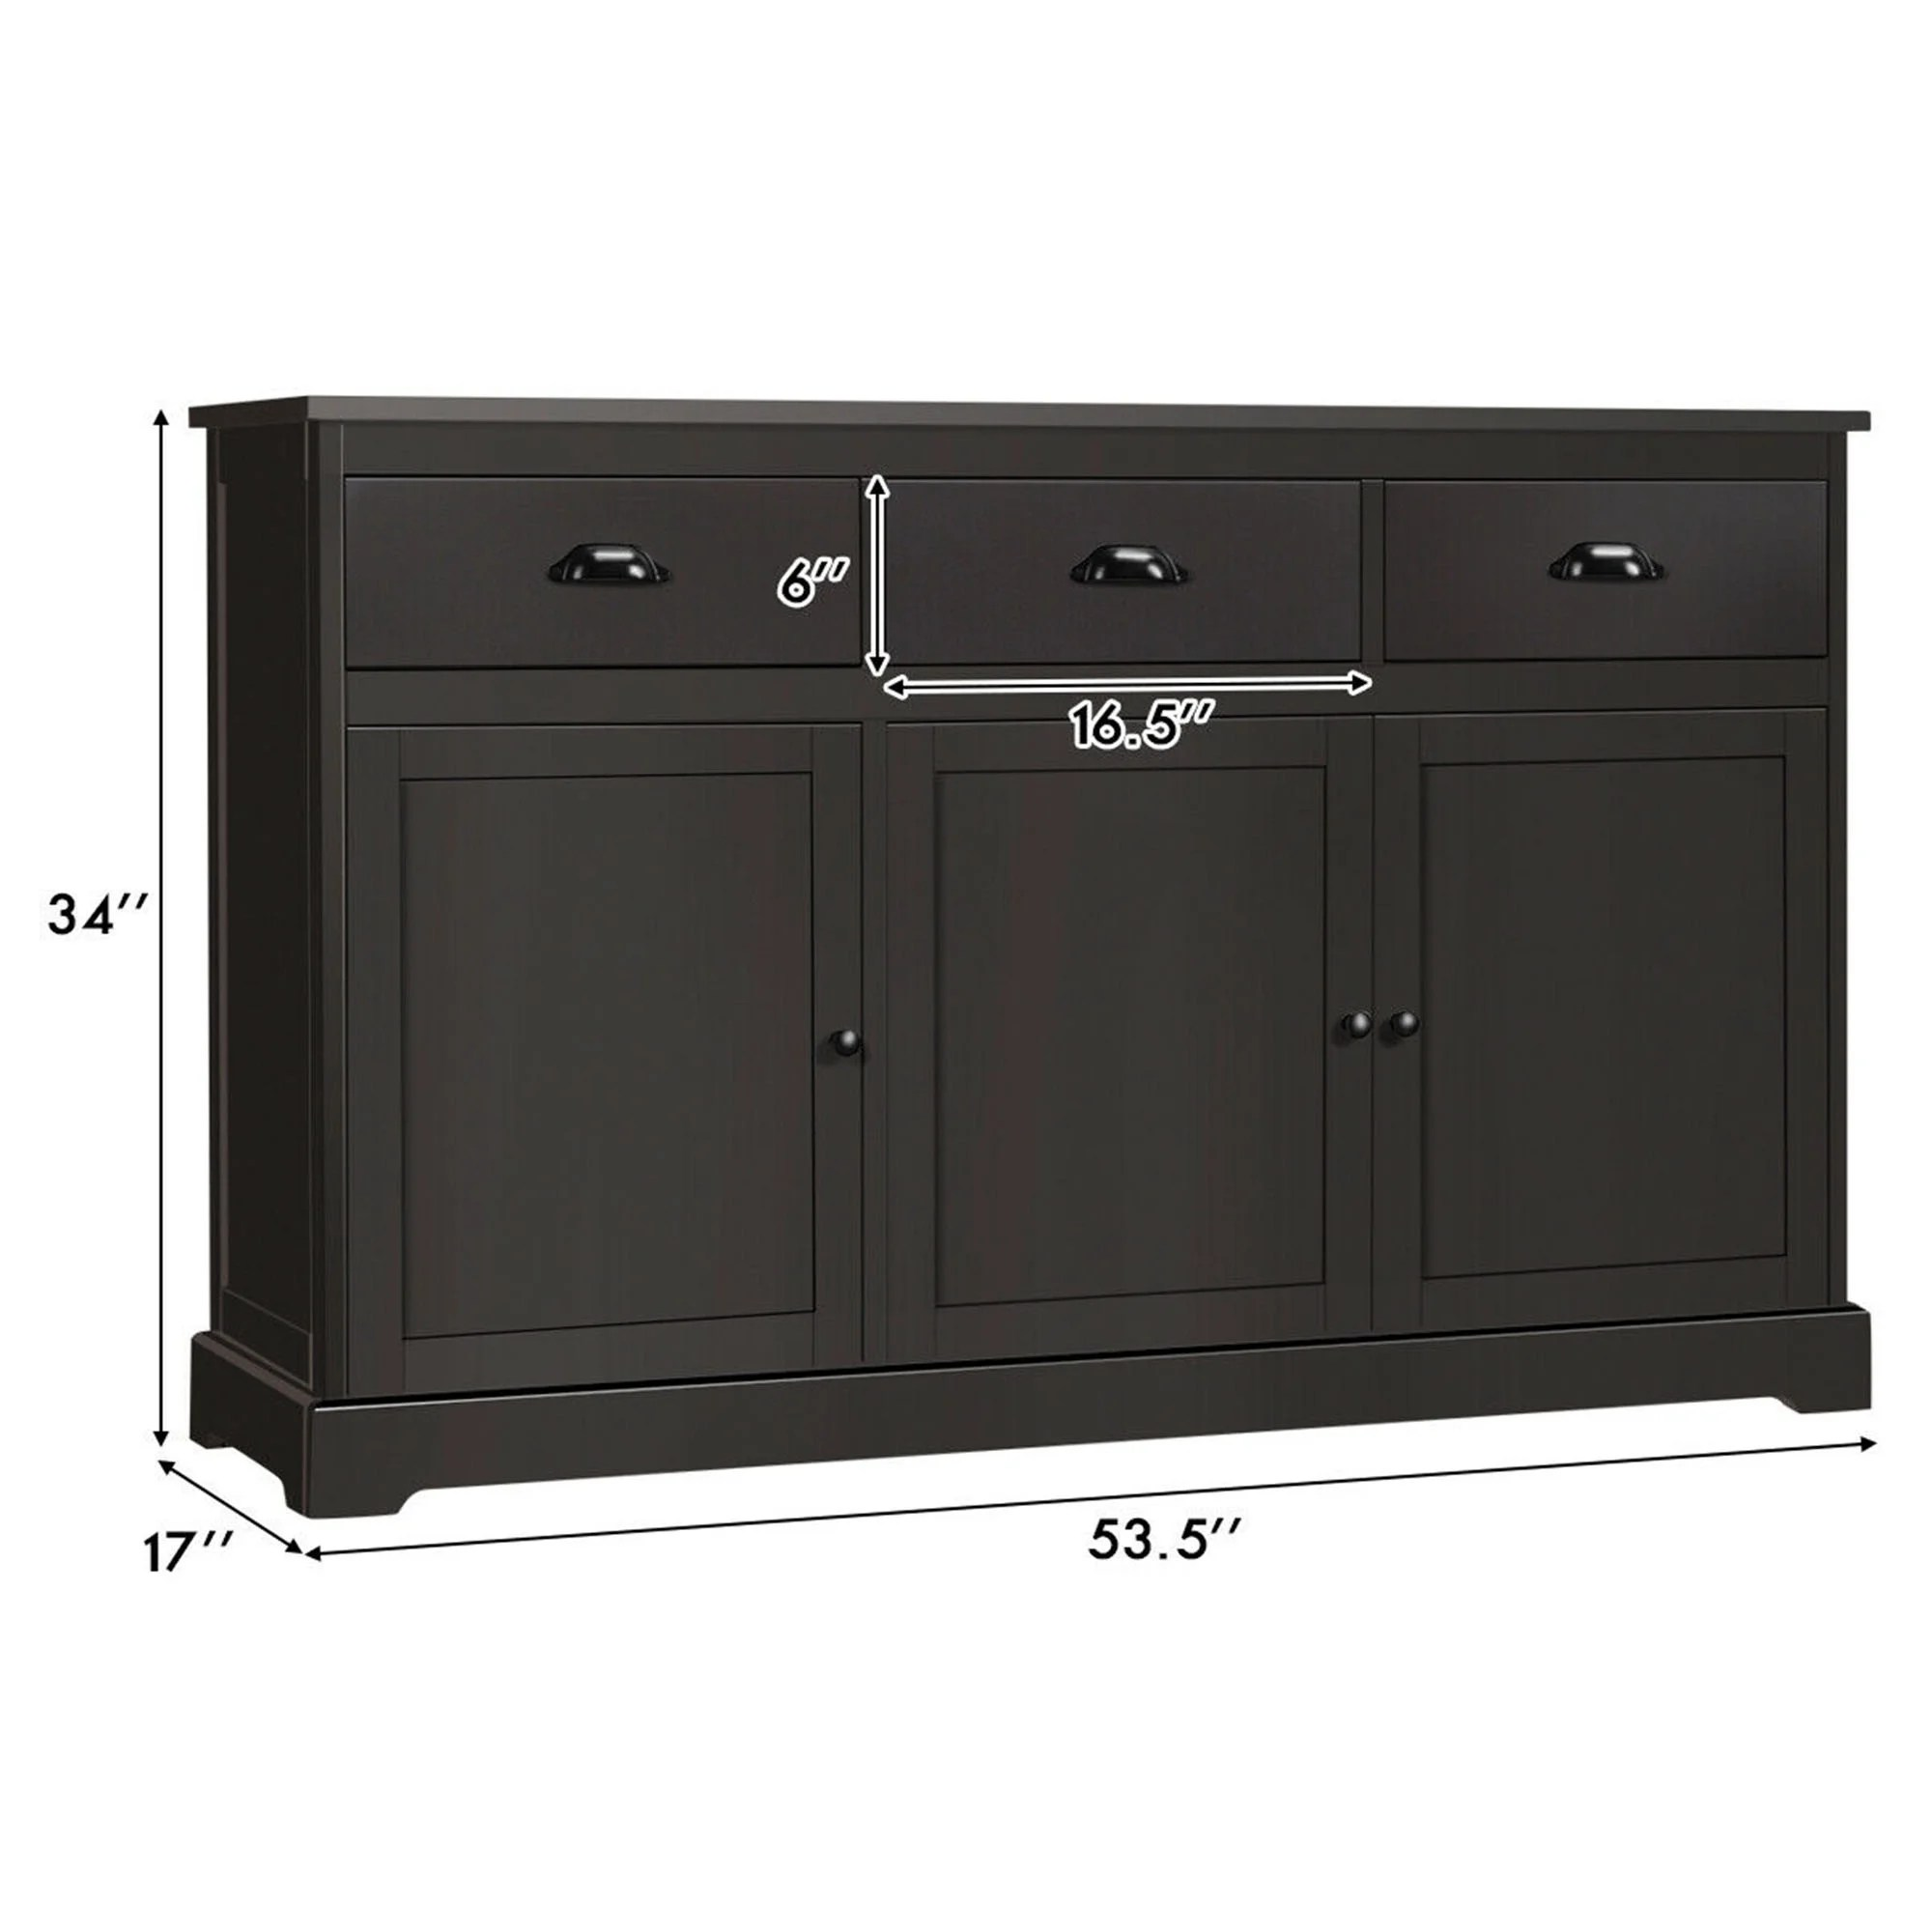 Shop Gymax 3 Drawers Sideboard Buffet Cabinet Console Table Kitchen Storage Overstock 32343691